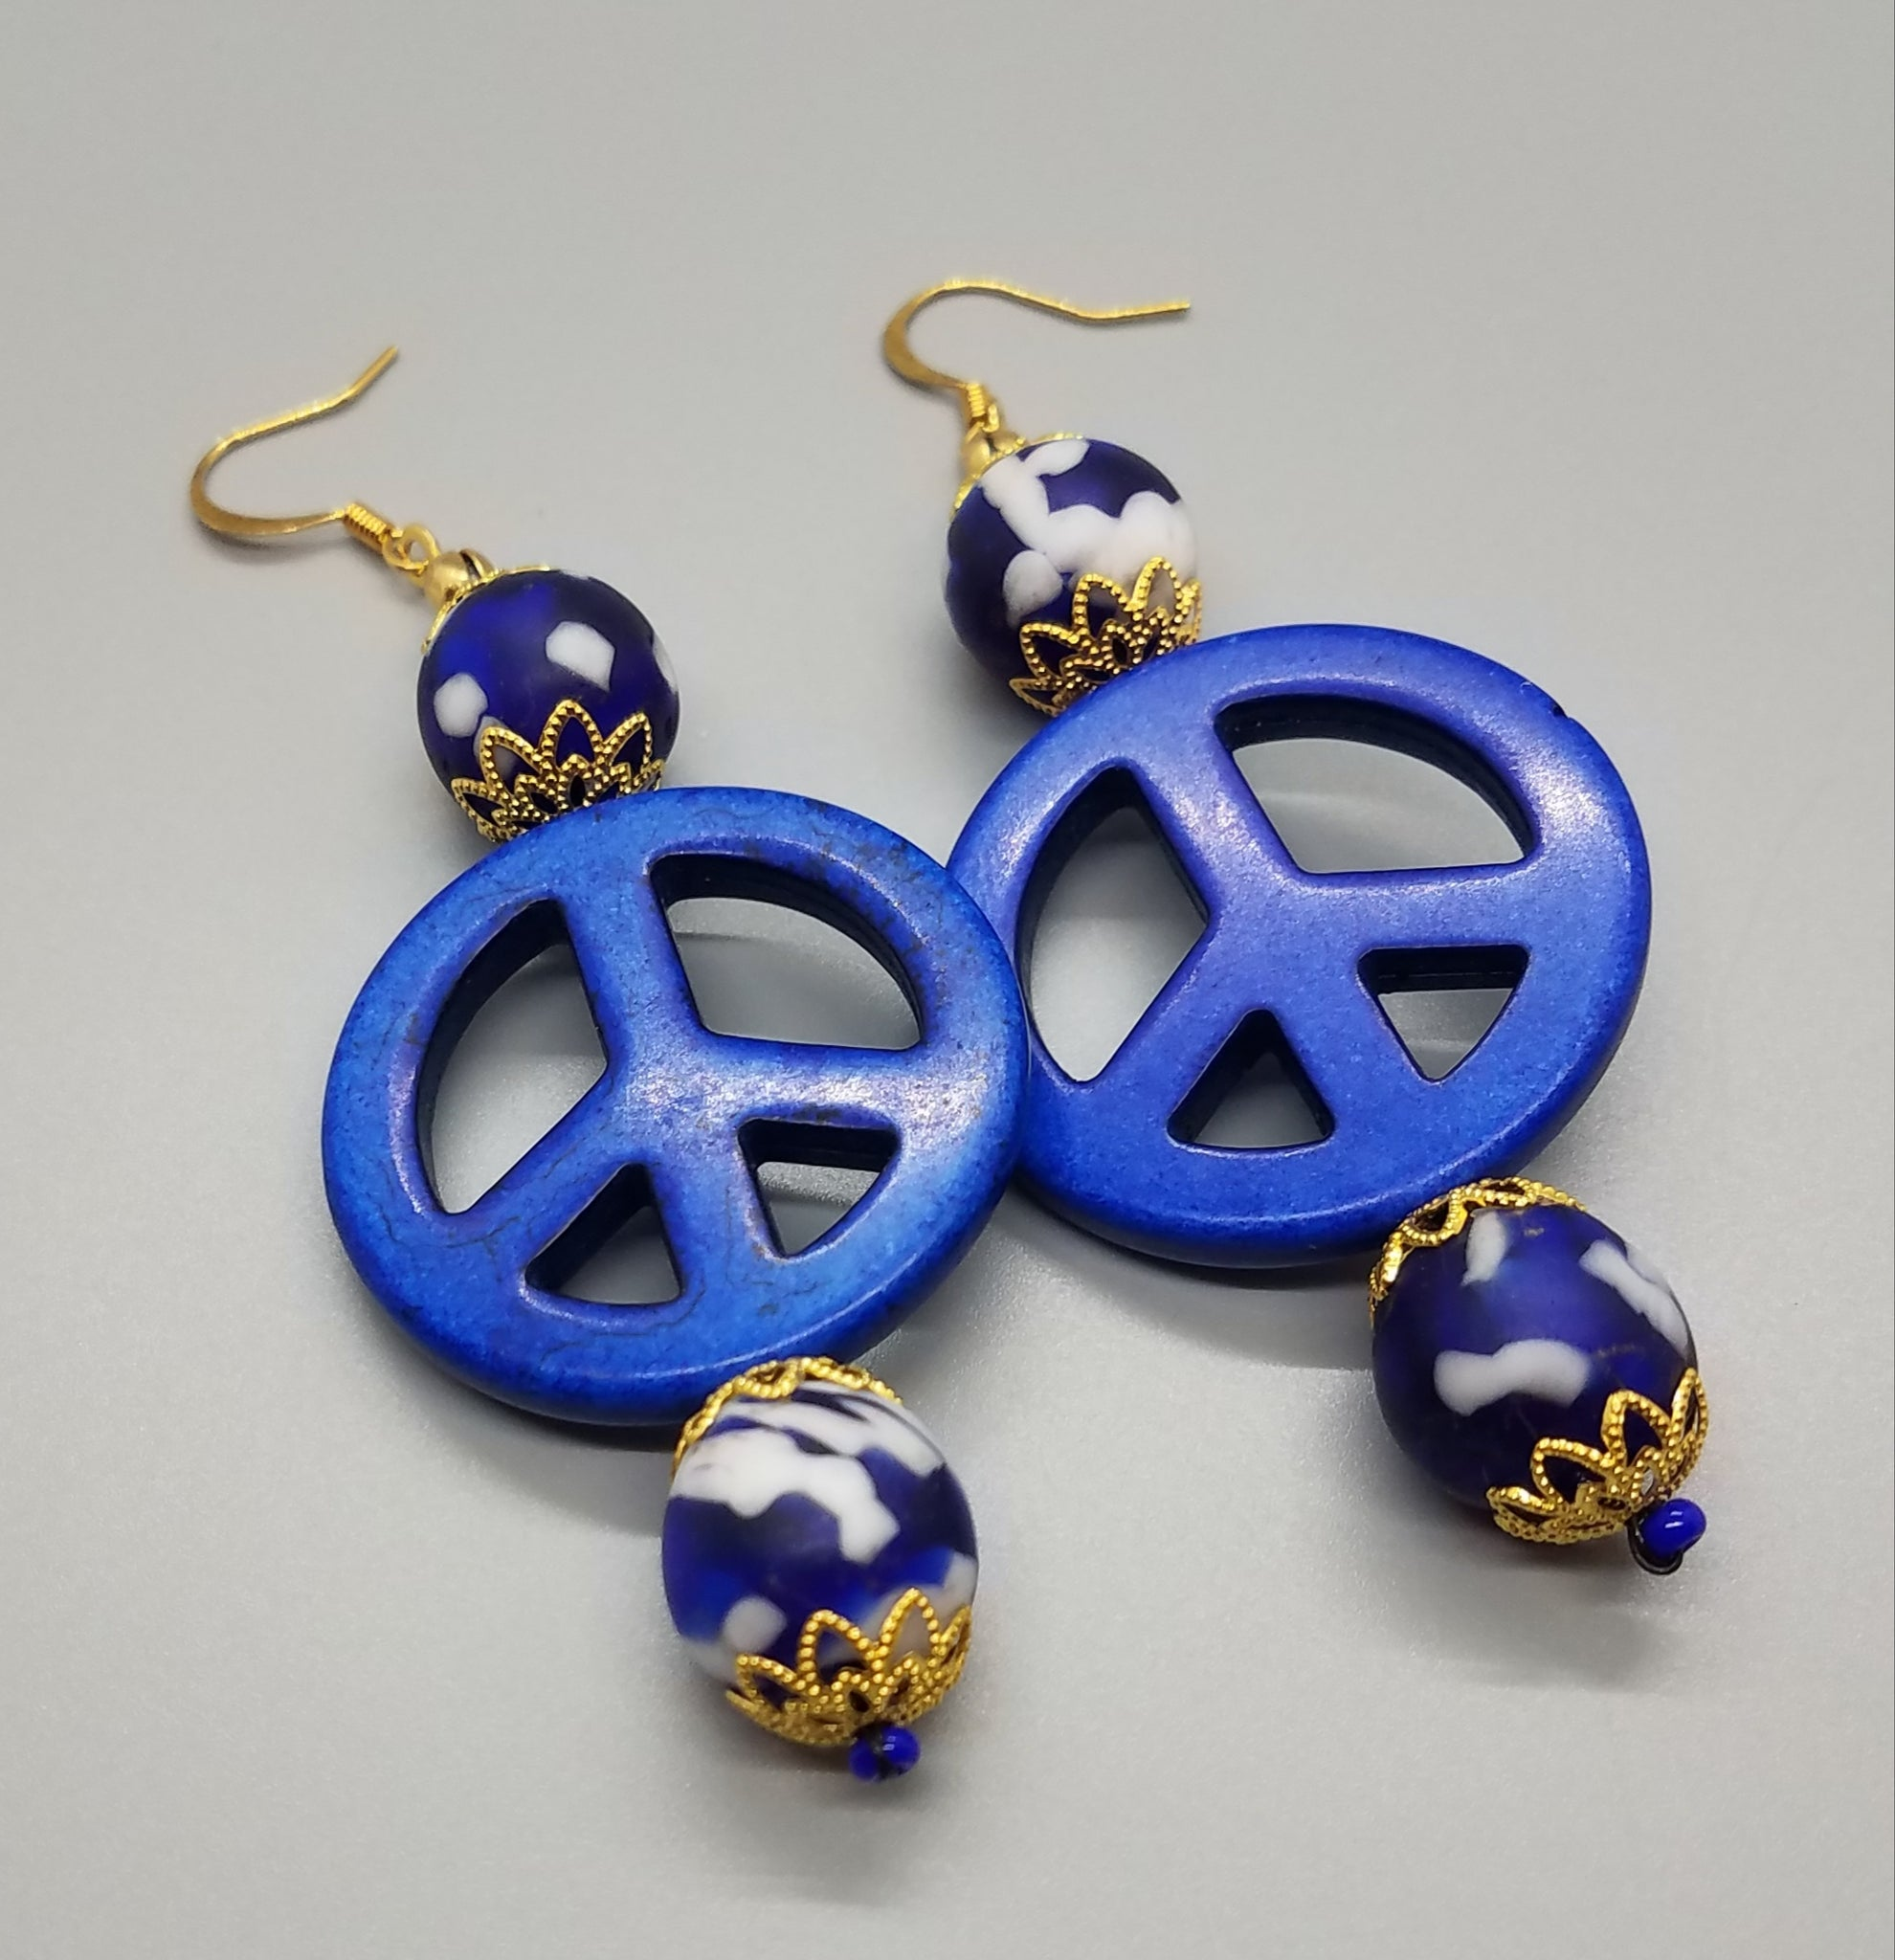 Blue, White Krobo Beads, Dyed Blue Magnesite Stones, Brass Earrings